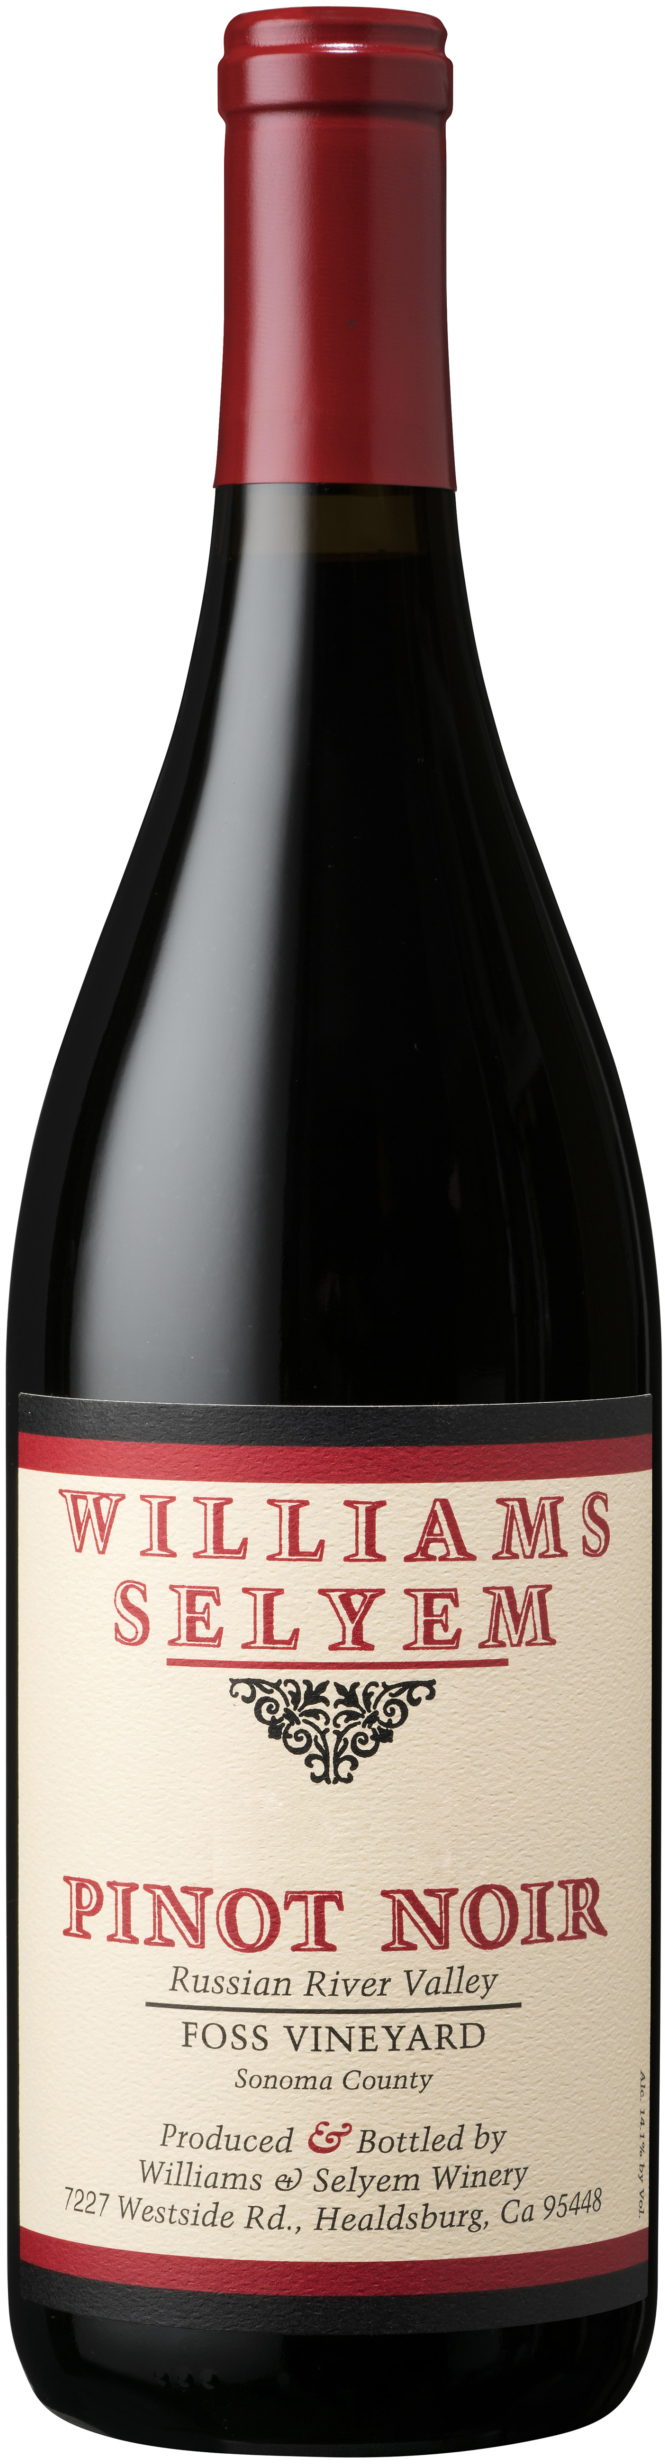 Williams Selyem - Foss Vineyard Pinot Noir Russian River Valley 2012 12x 75cl Bottles